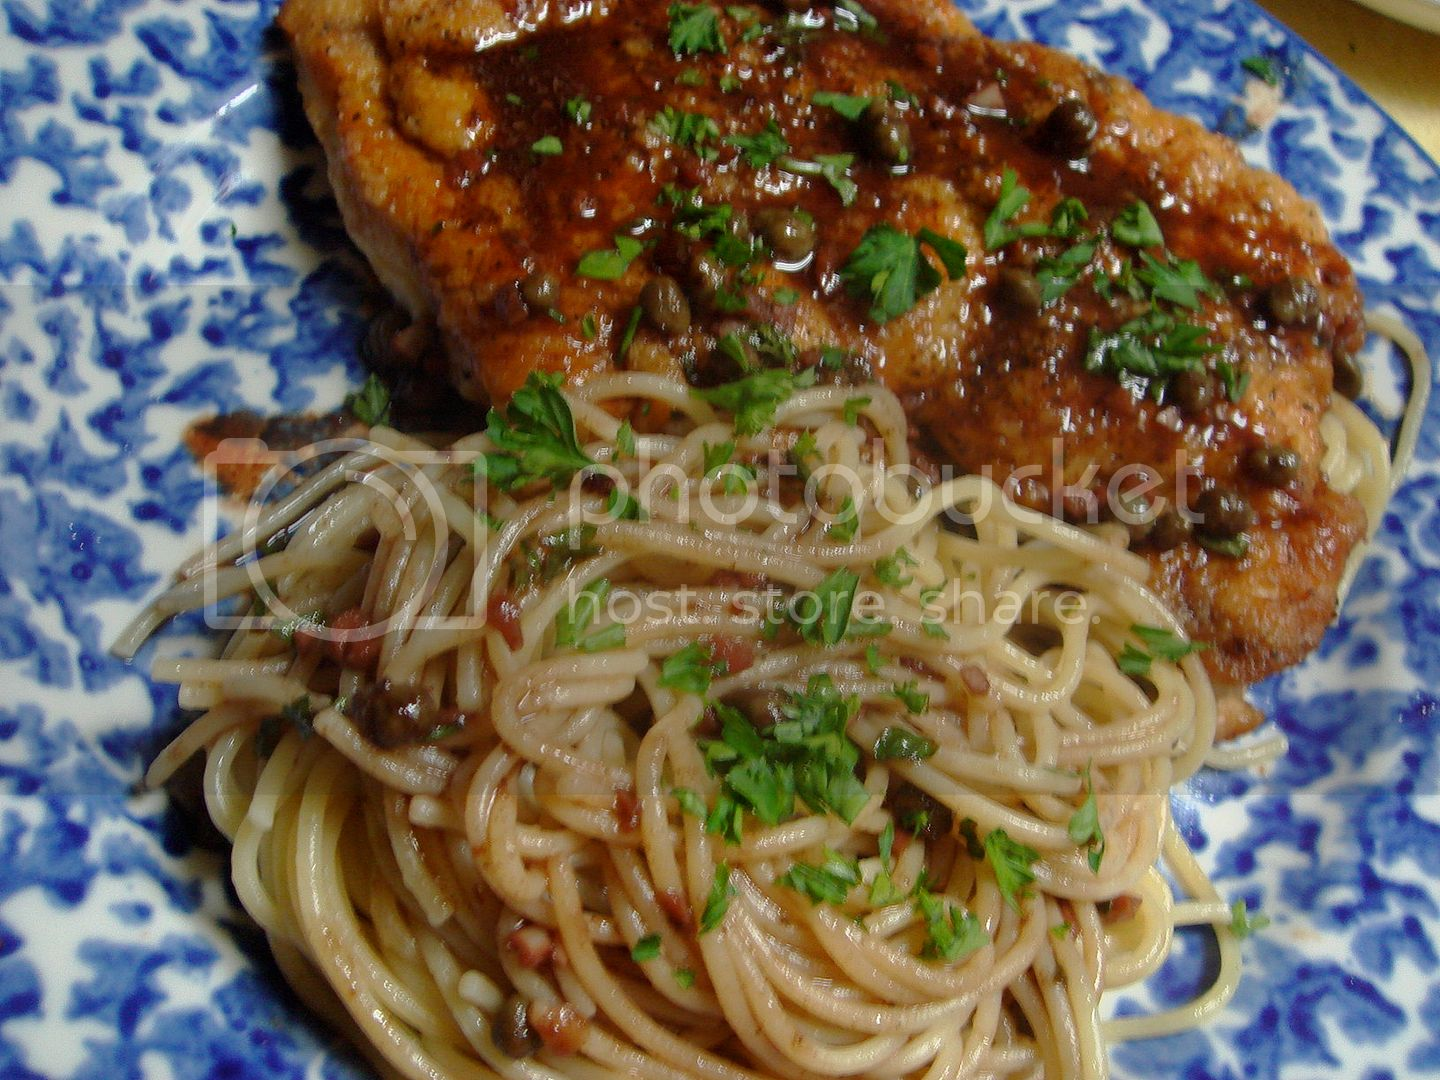 chicken cutlet with pomegranate sauce and spaghetti